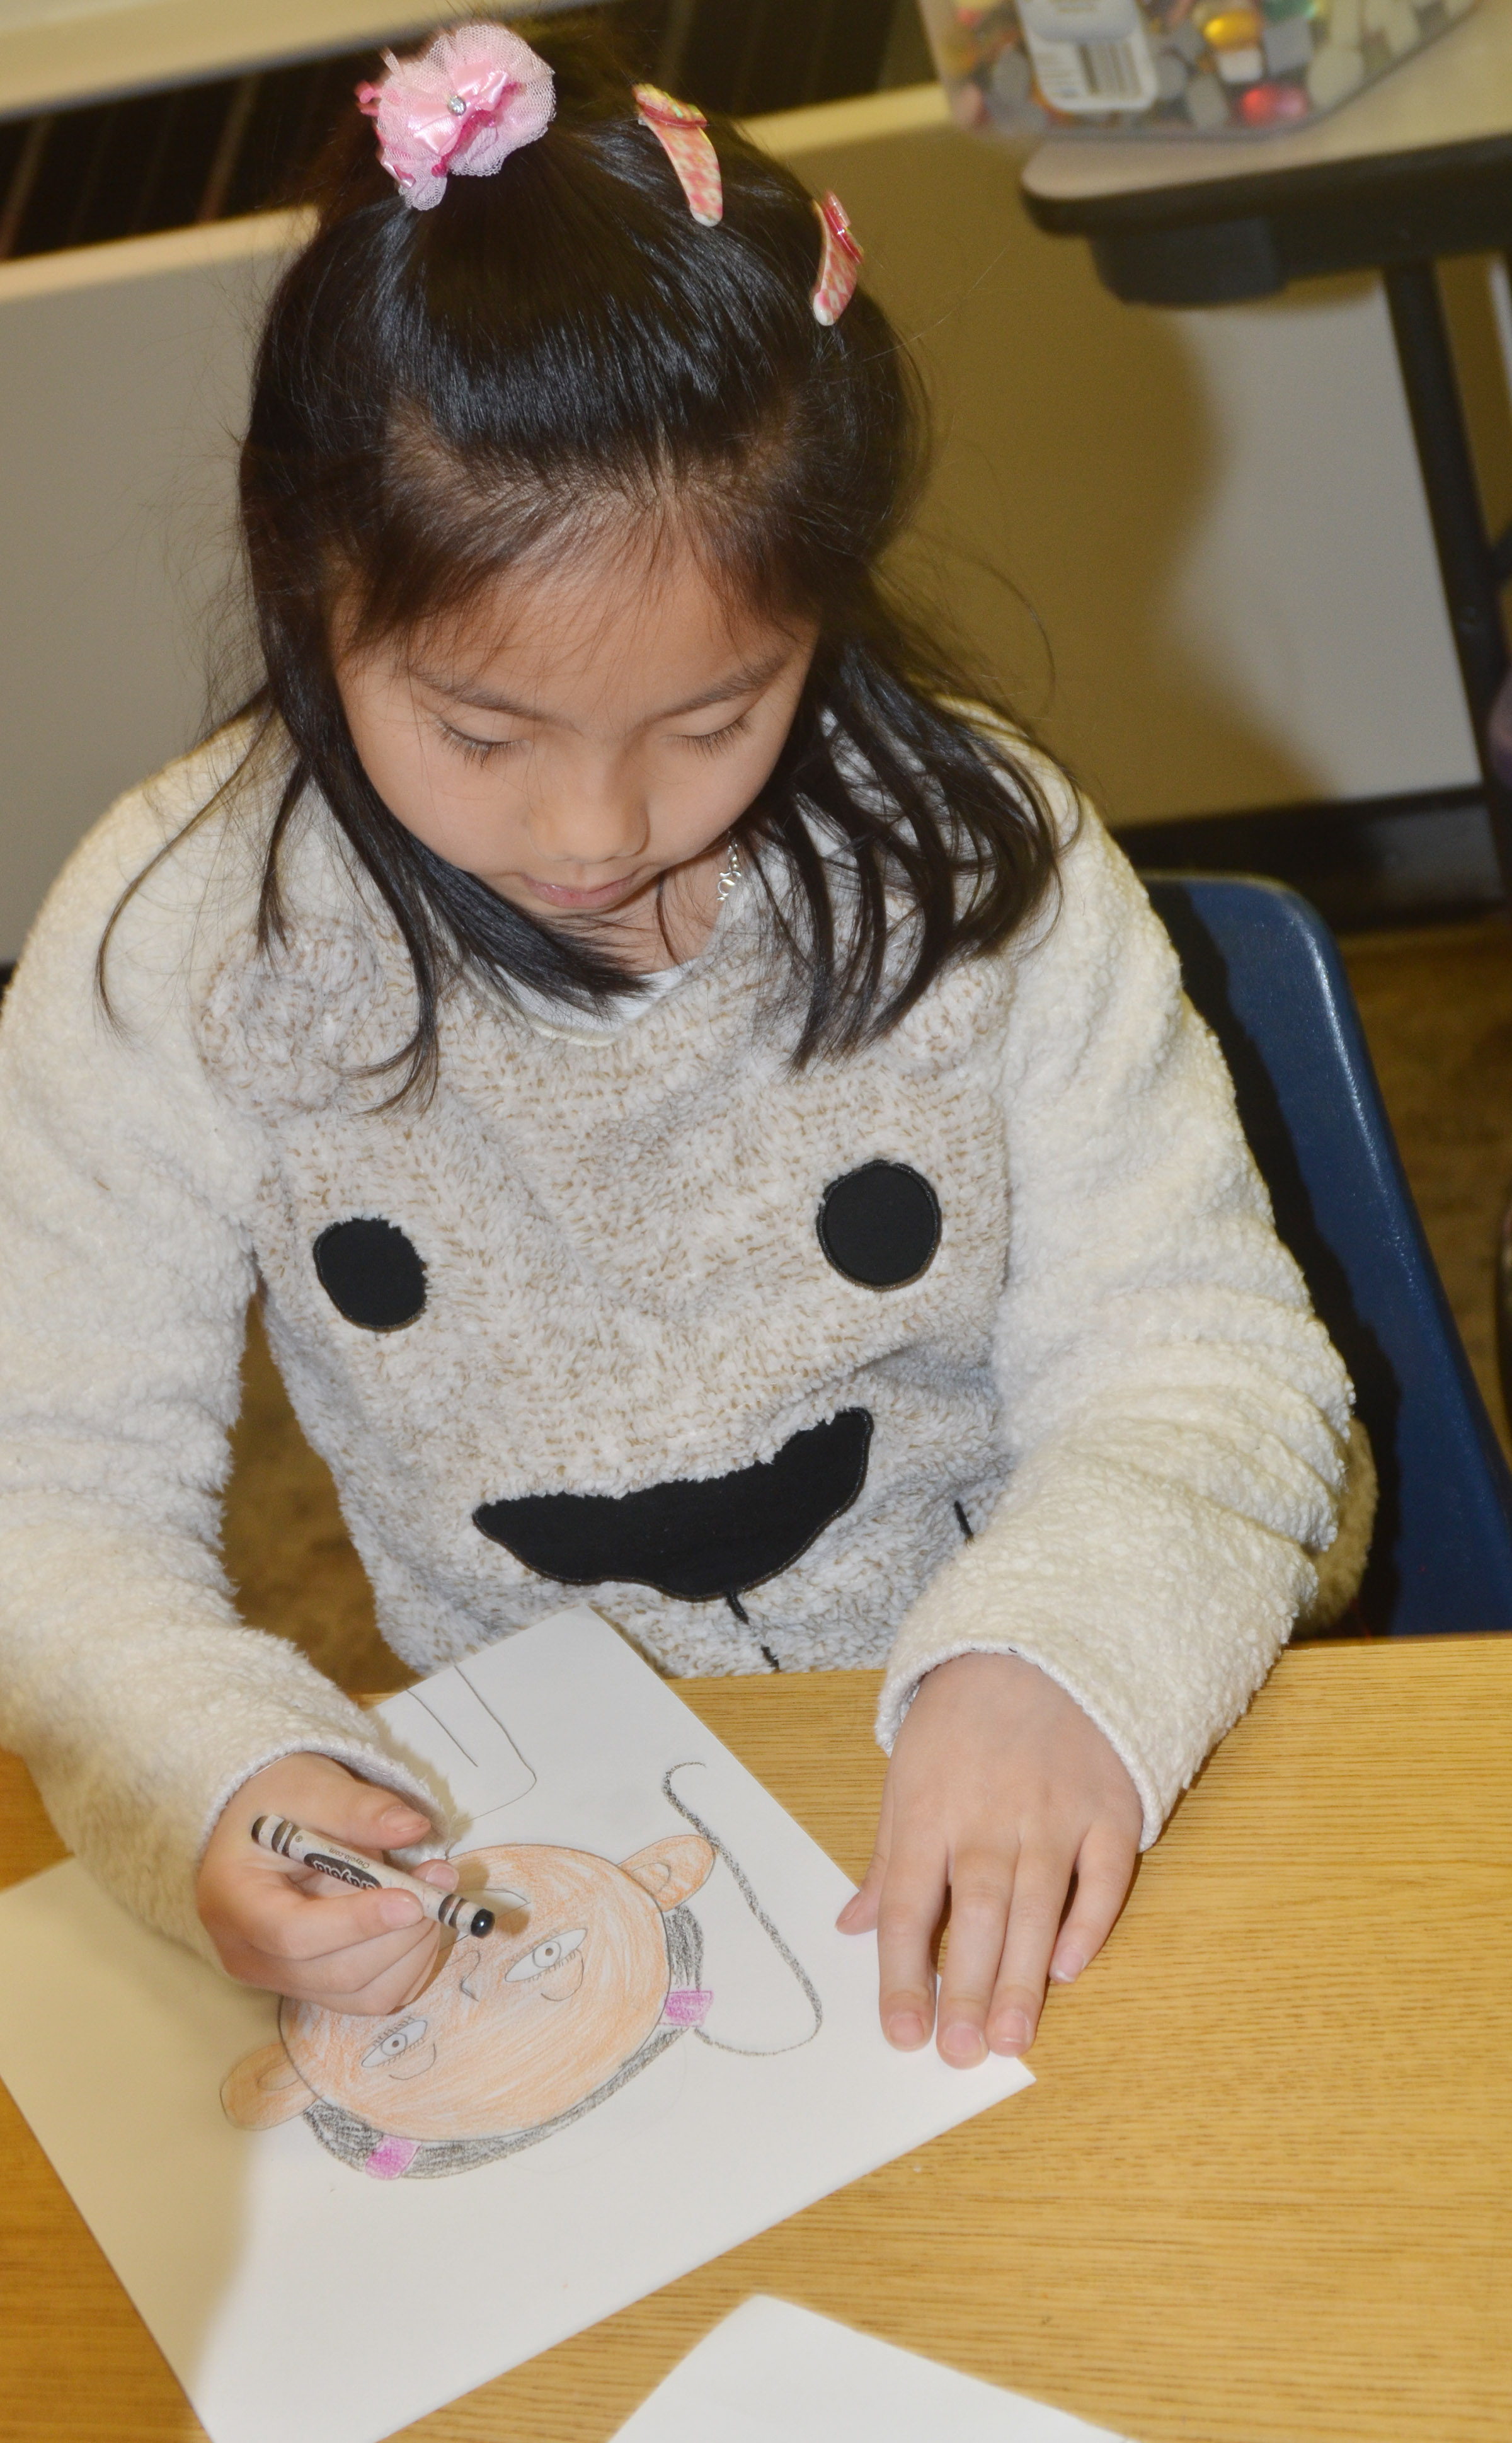 CES second-grader Tina Jiang colors her self-portrait.